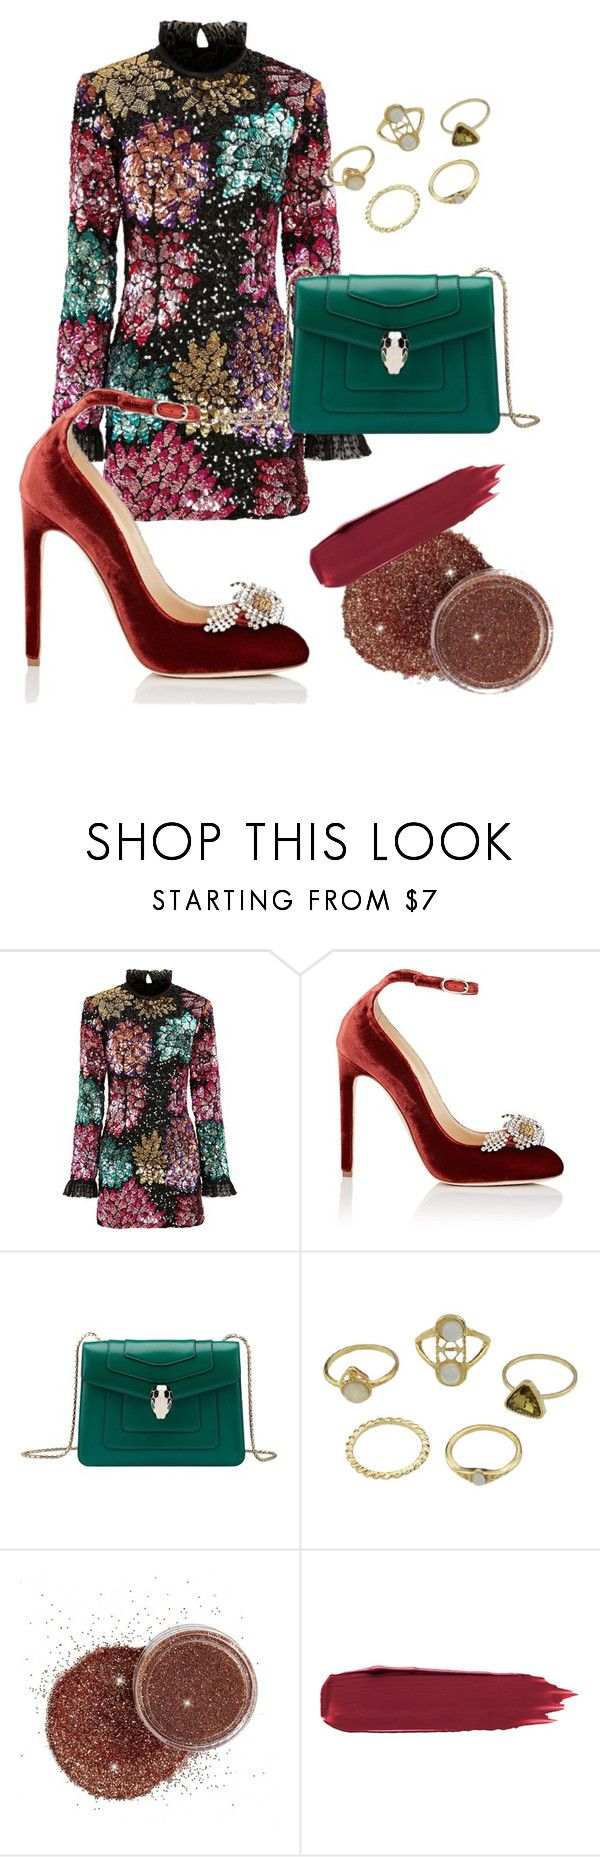 """Без названия #11"" by olya-chernenko ❤ liked on Polyvore featuring Millie Mackintosh, Chloe Gosselin and Bulgari"